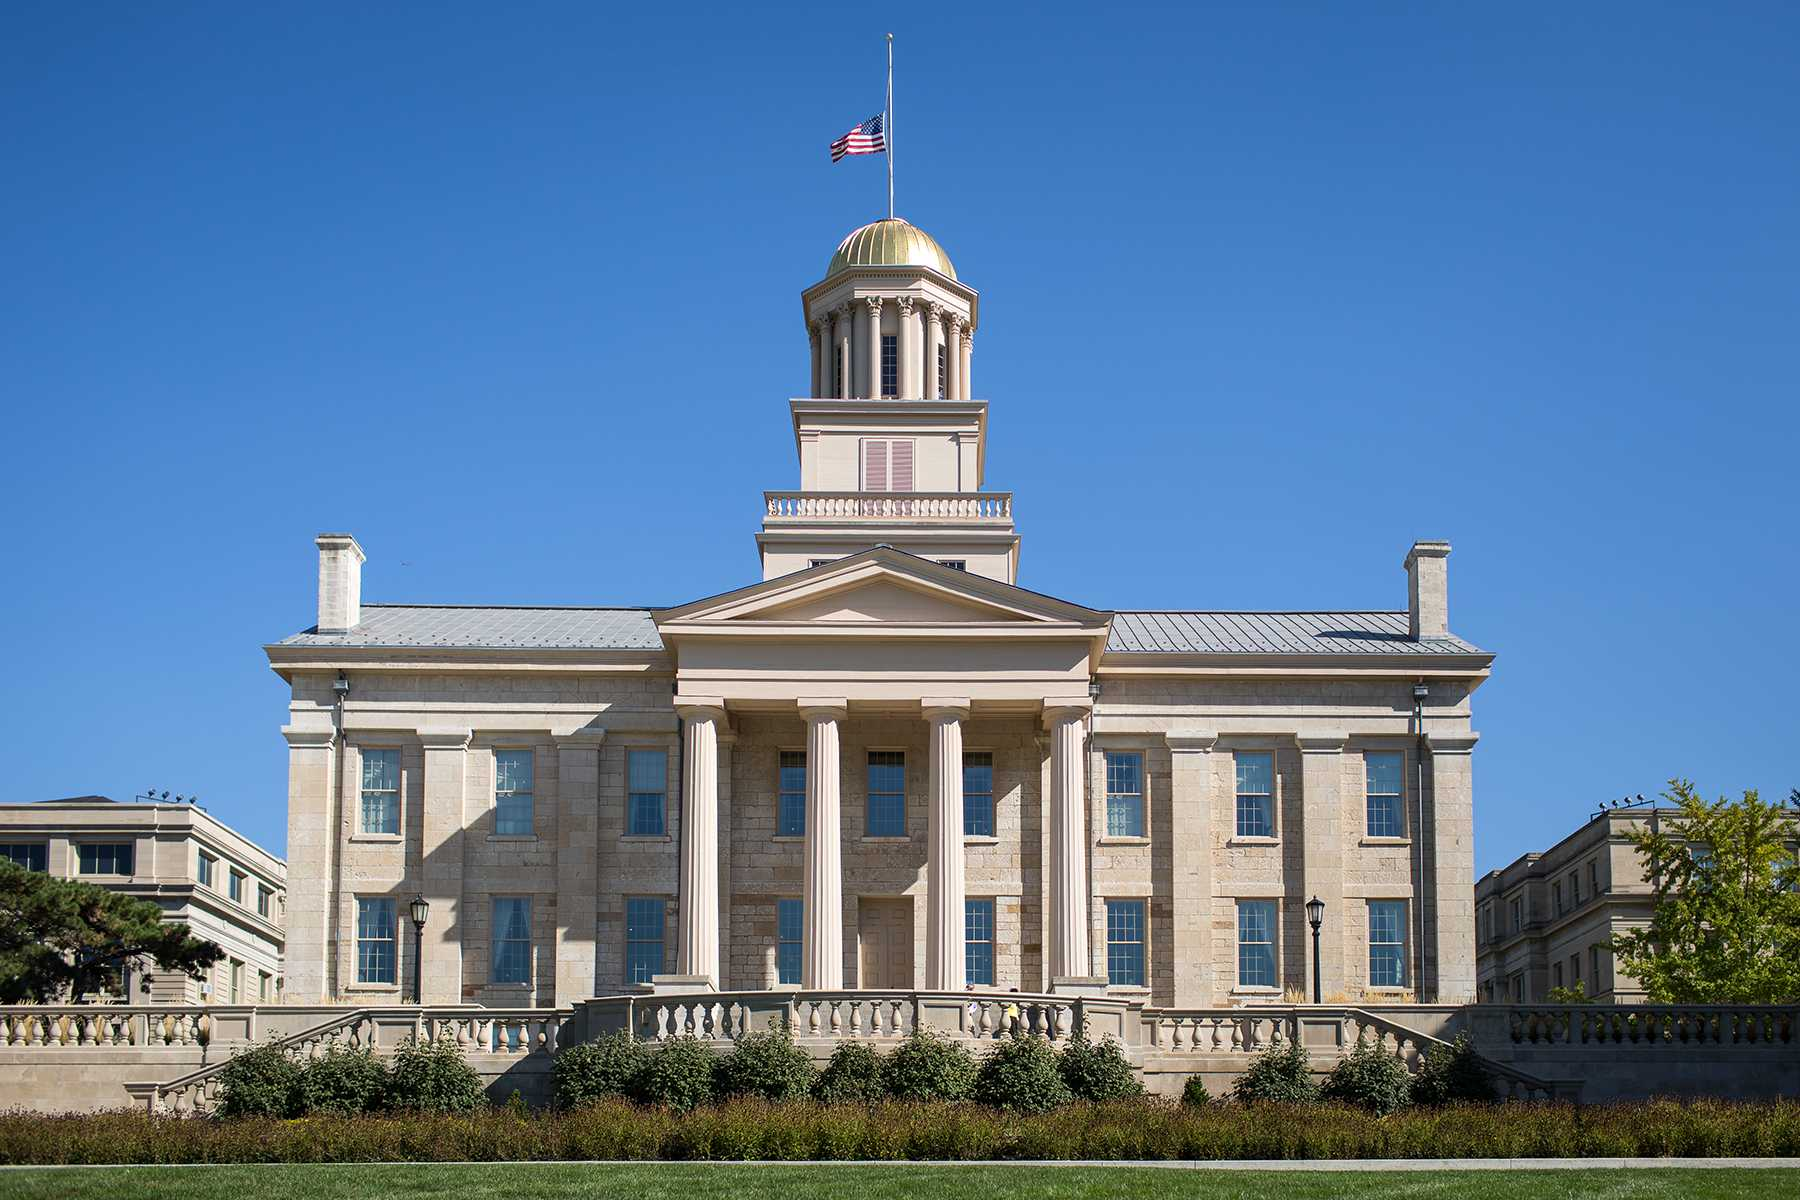 FILE - University of Iowa Old Capitol building. (File photo/The Daily Iowan)